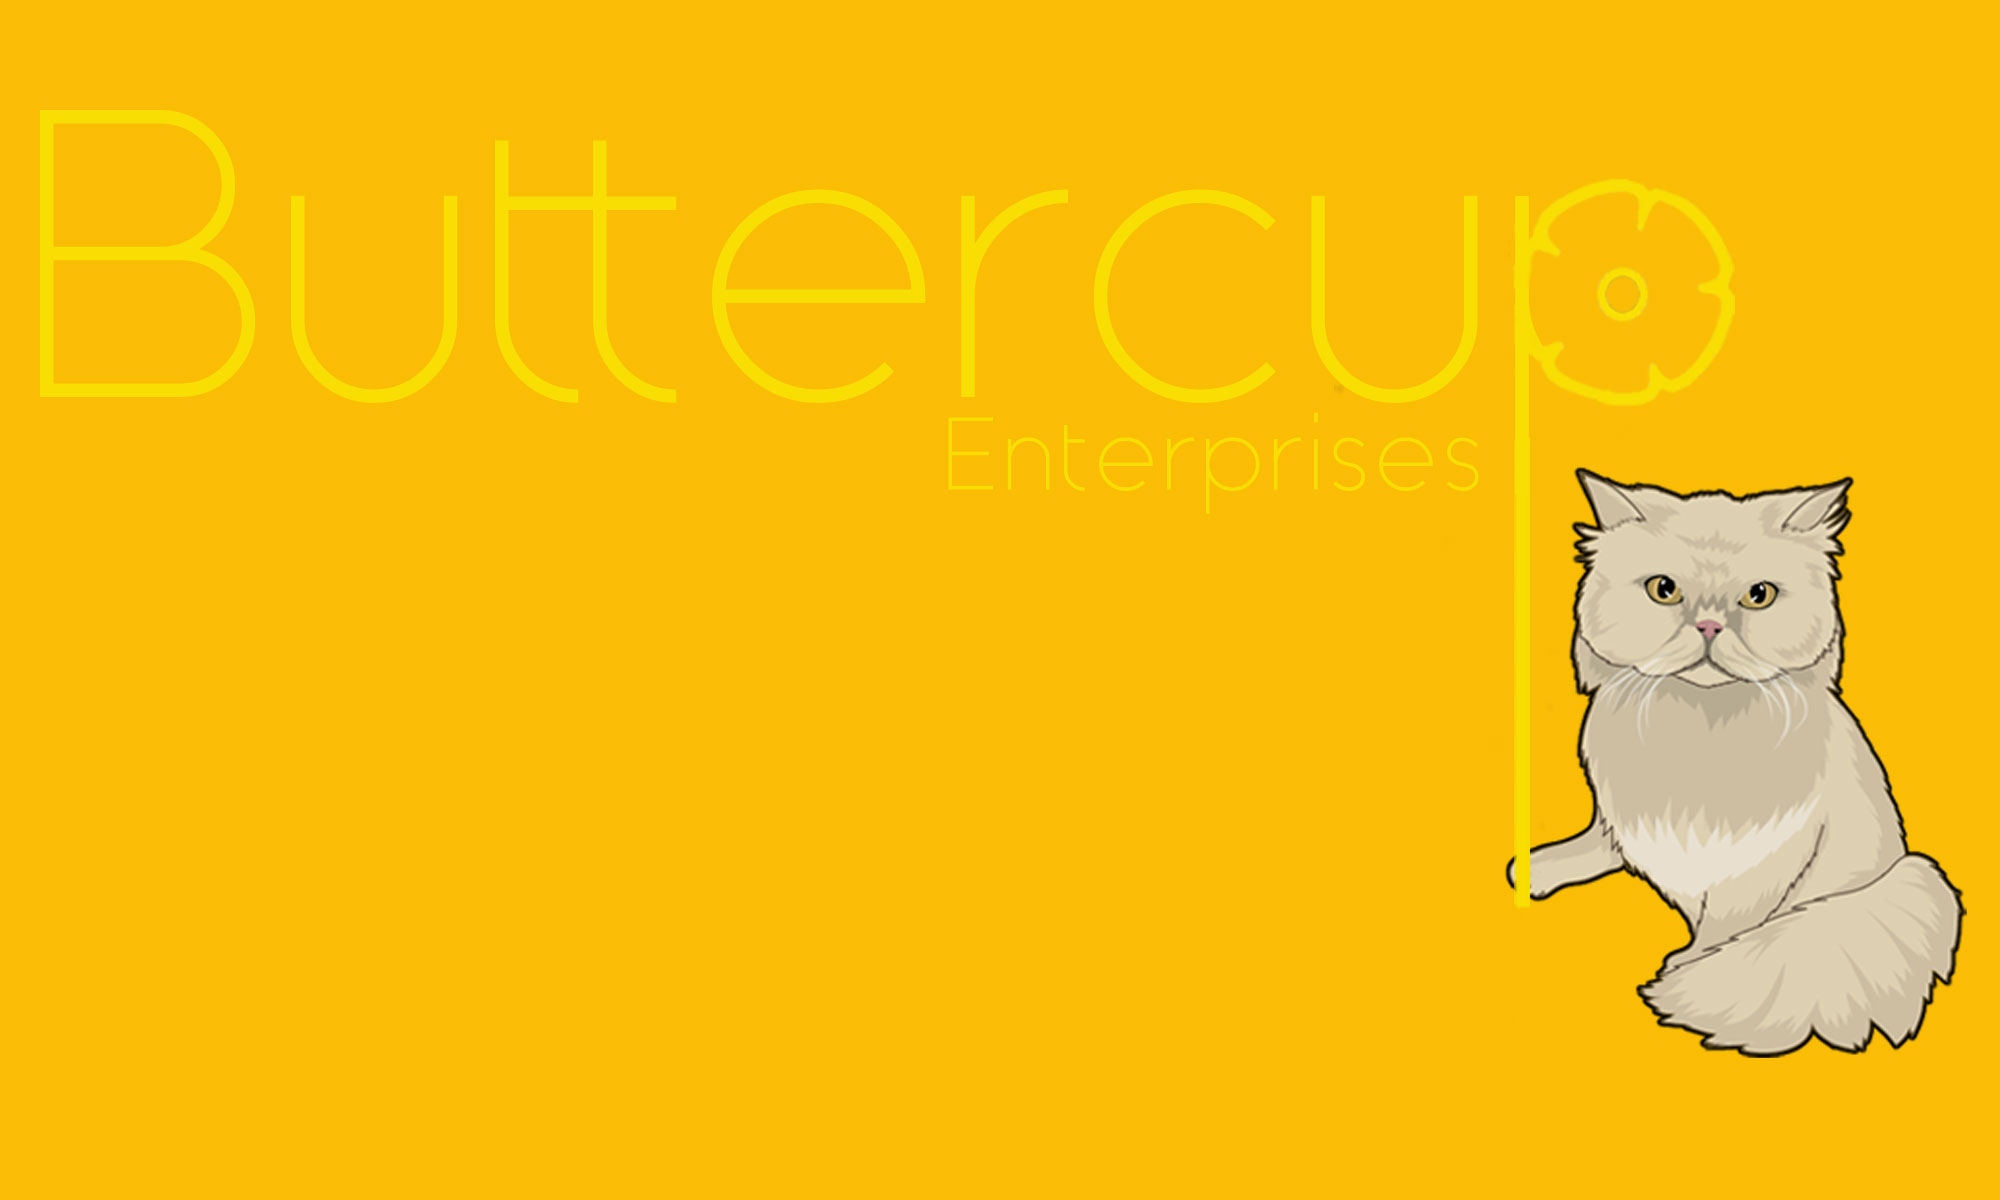 Buttercup Enterprises